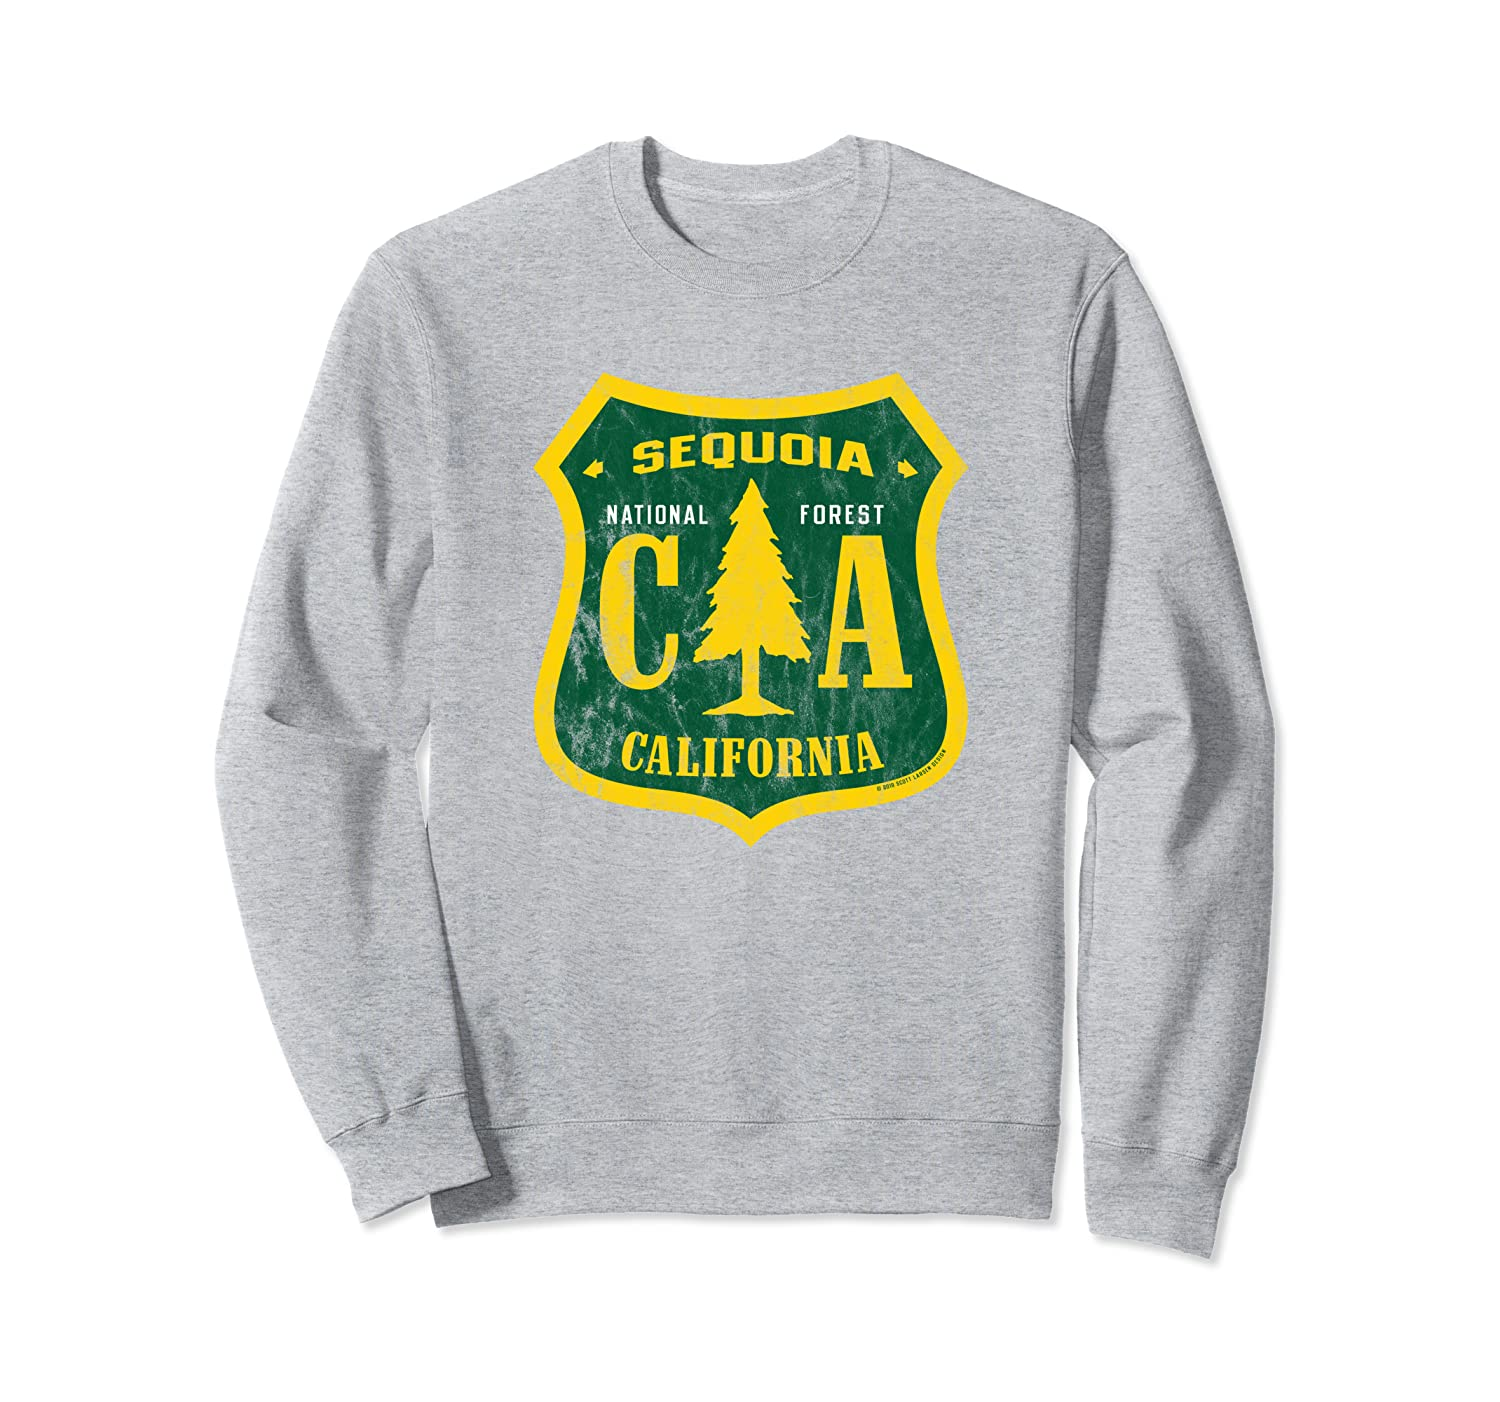 Sequoia National Forest California Shield Retro Vintage Look Sweatshirt